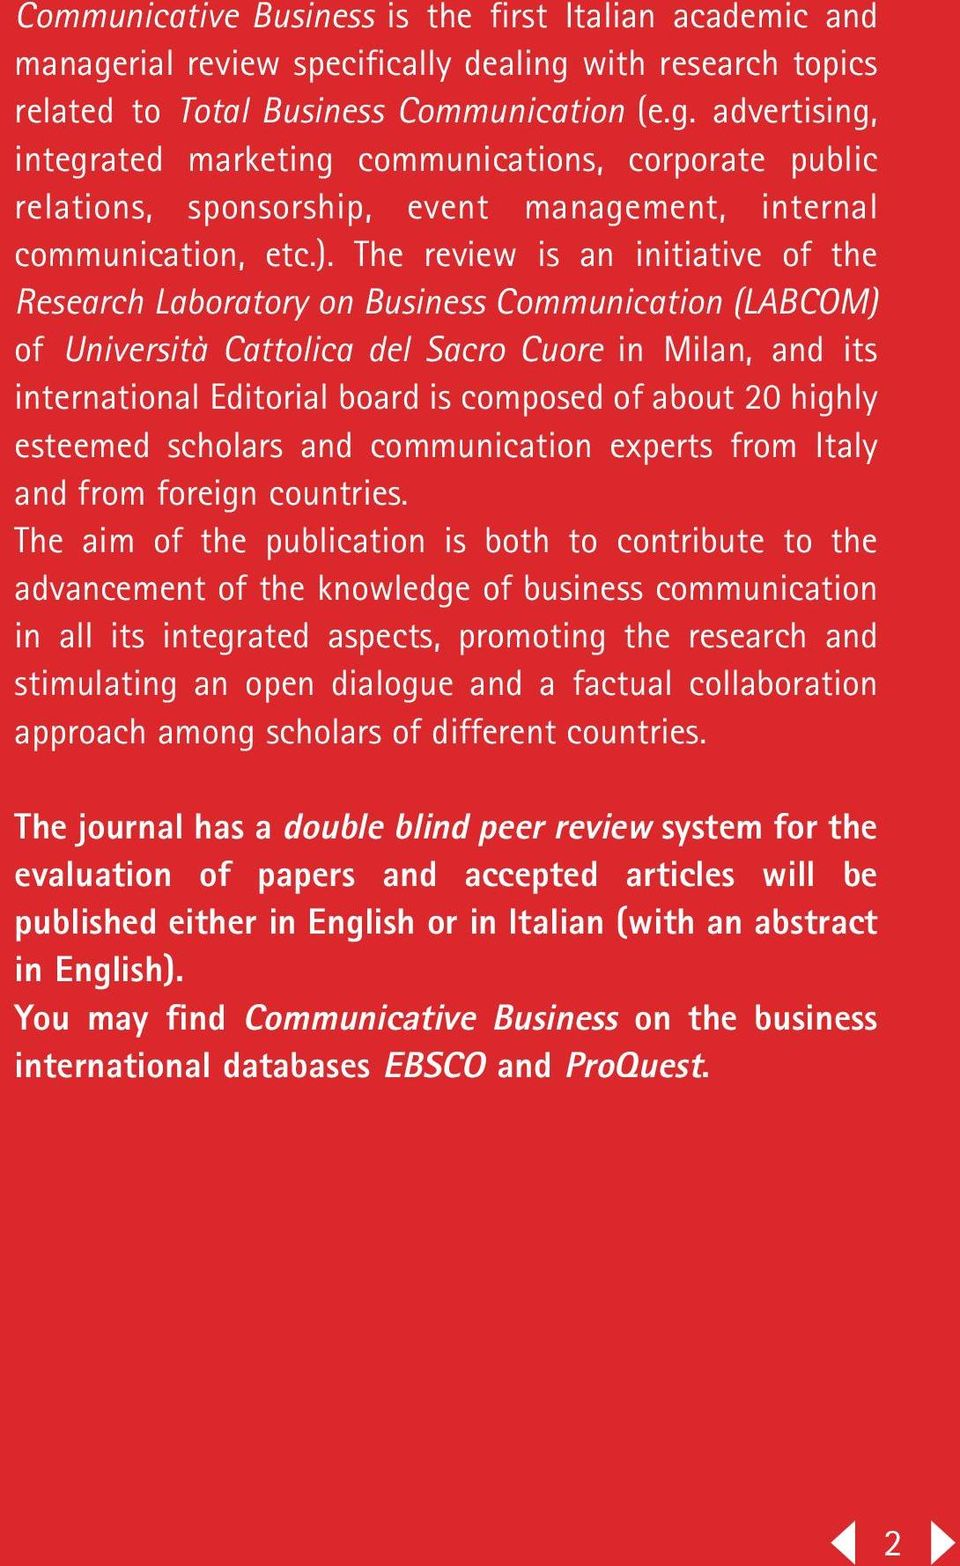 ). The review is an initiative of the Research Laboratory on Business Communication (LABCOM) of Università Cattolica del Sacro Cuore in Milan, and its international Editorial board is composed of